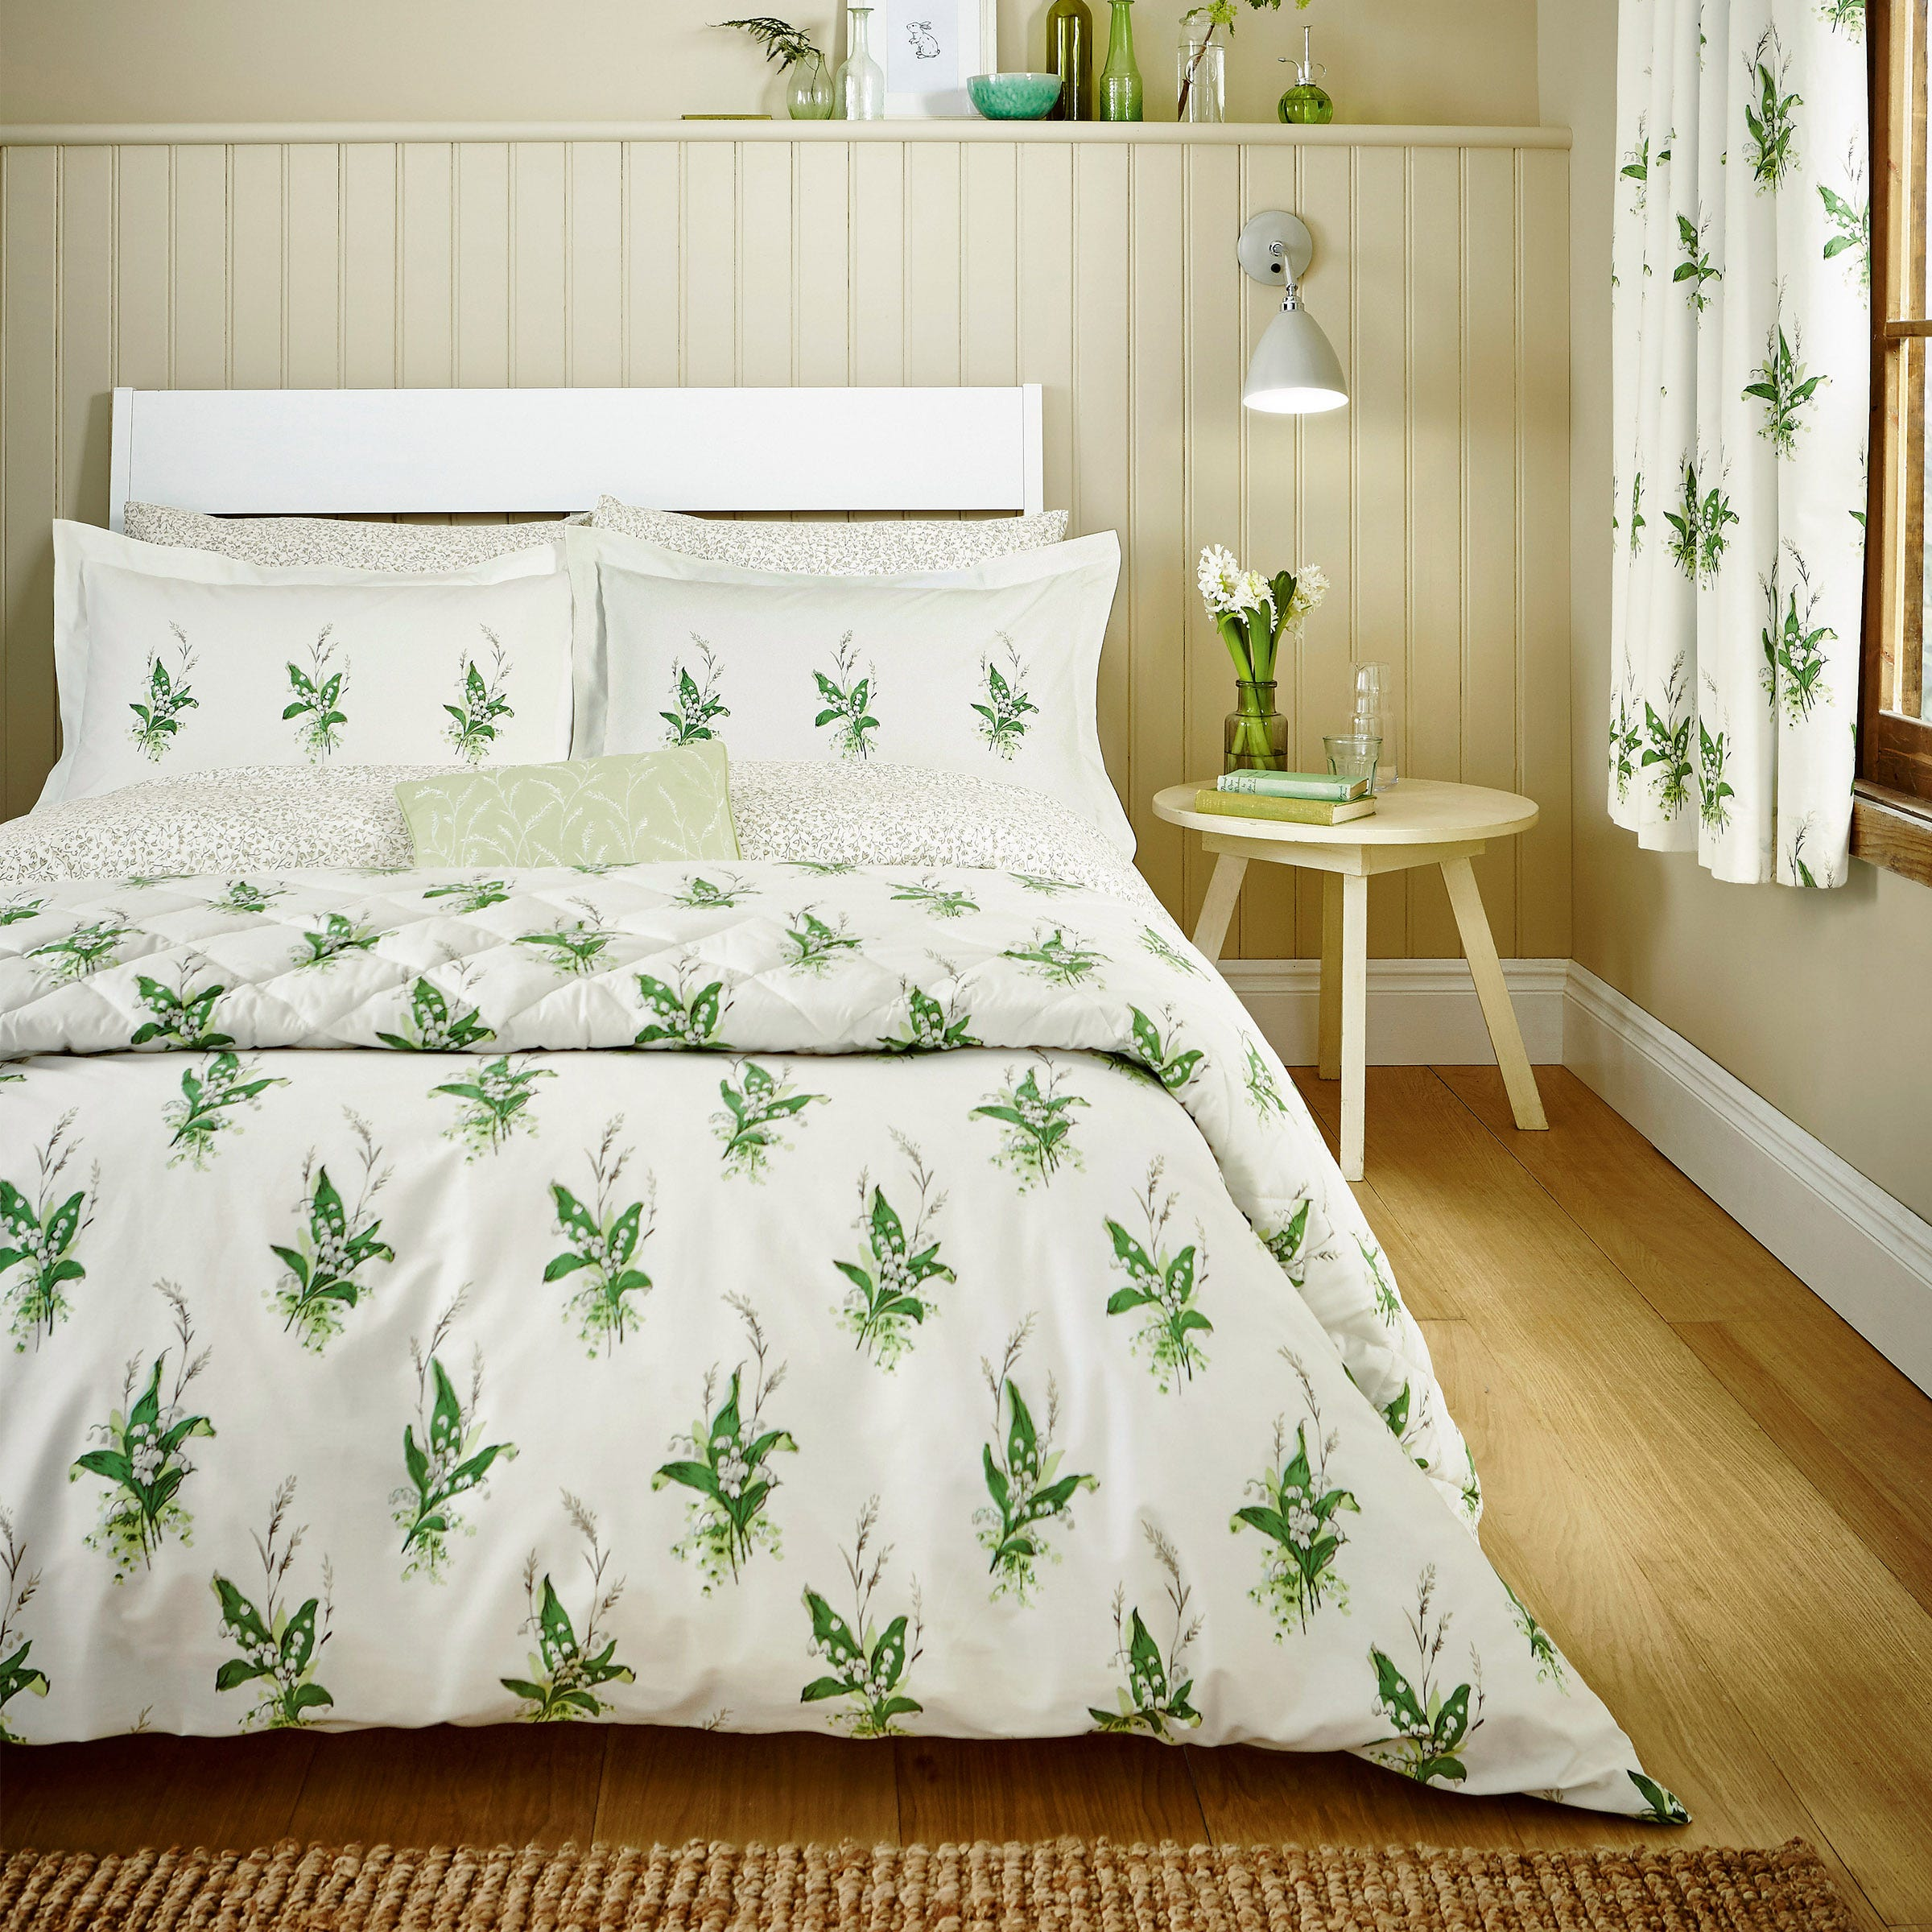 Sanderson Bedding Muguet Double Duvet Cover EmeraldIvory